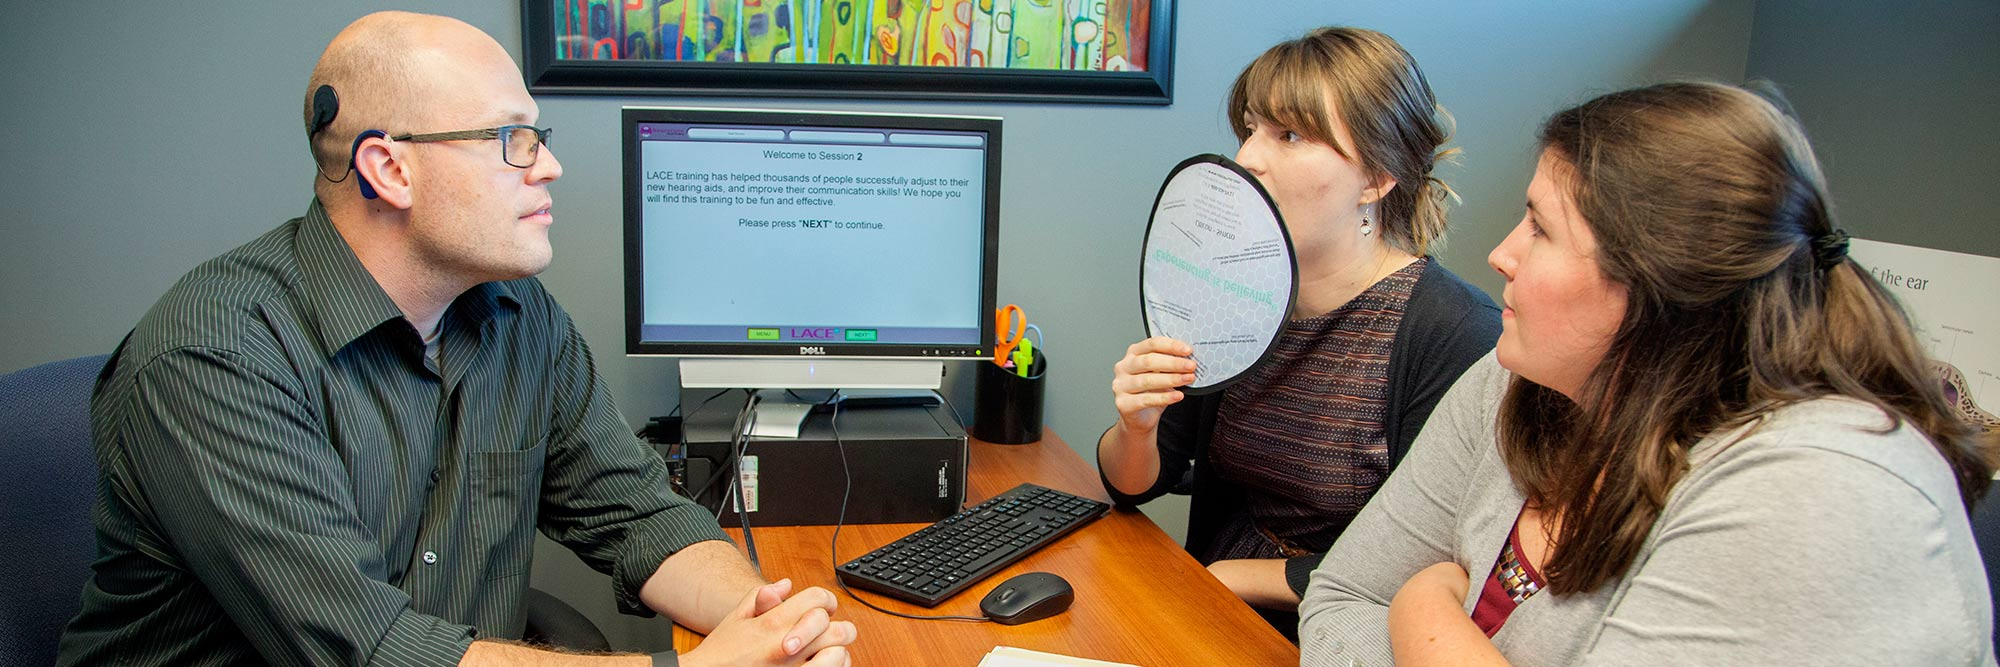 banner-communication-sciences-disorders-ms Graduate student clinicians work with a client with cochlear implants.